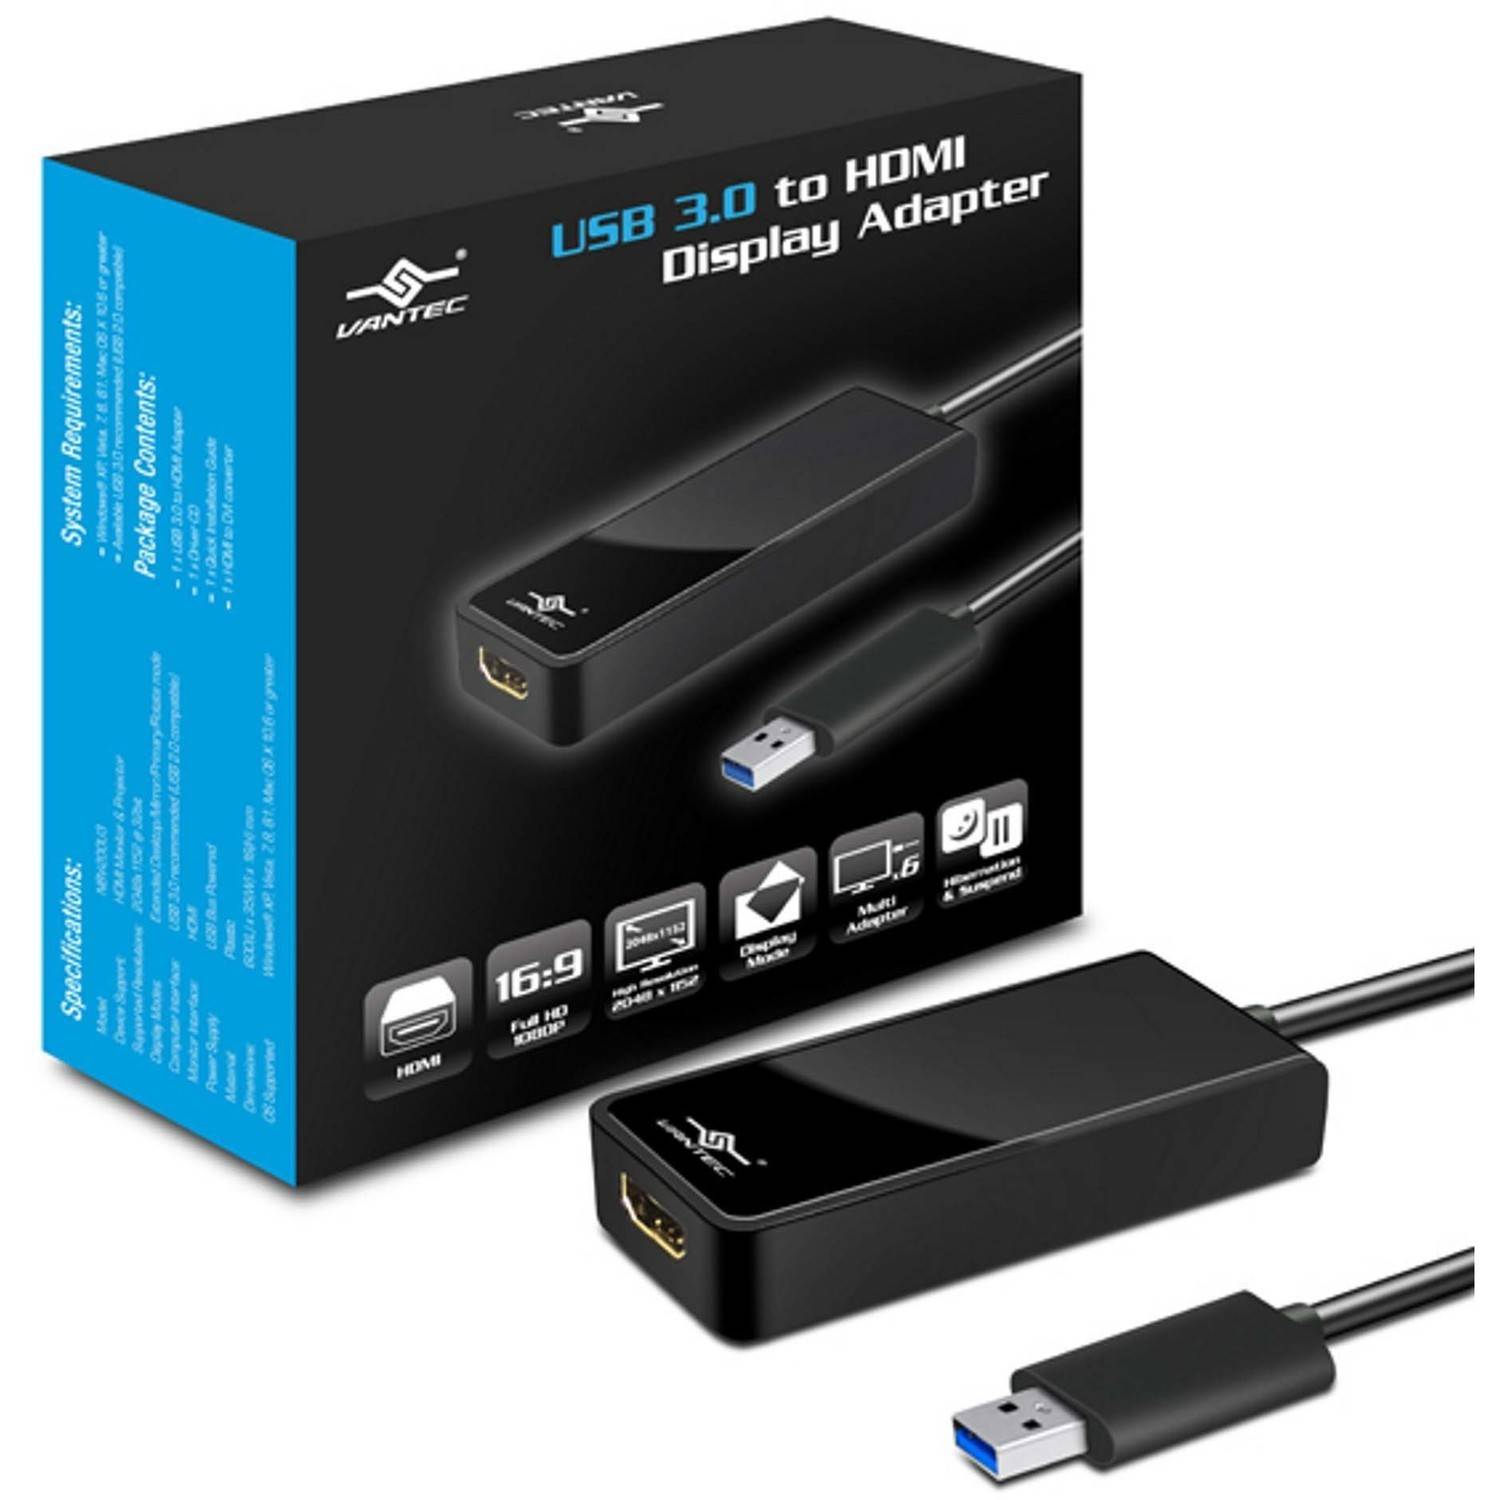 Vantec NBV-200U3 USB 3.0 to HDMI Display Adapter, Black